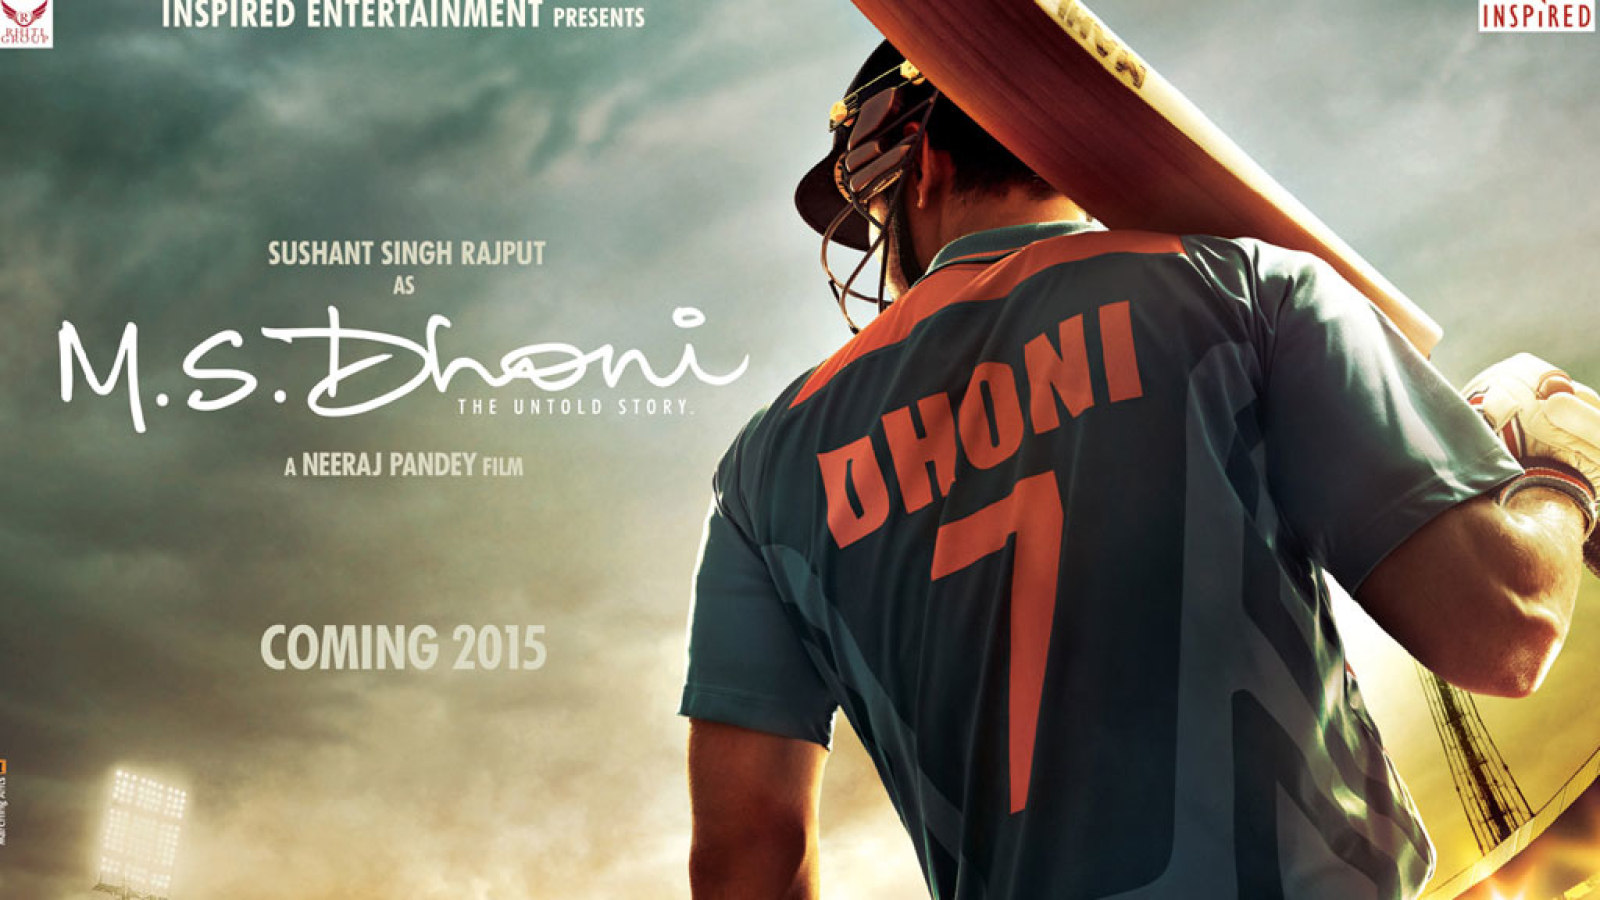 1600x900 Ms Dhoni Untold Story Poster 1600x900 Resolution Wallpaper Hd Movies 4k Wallpapers Images Photos And Background